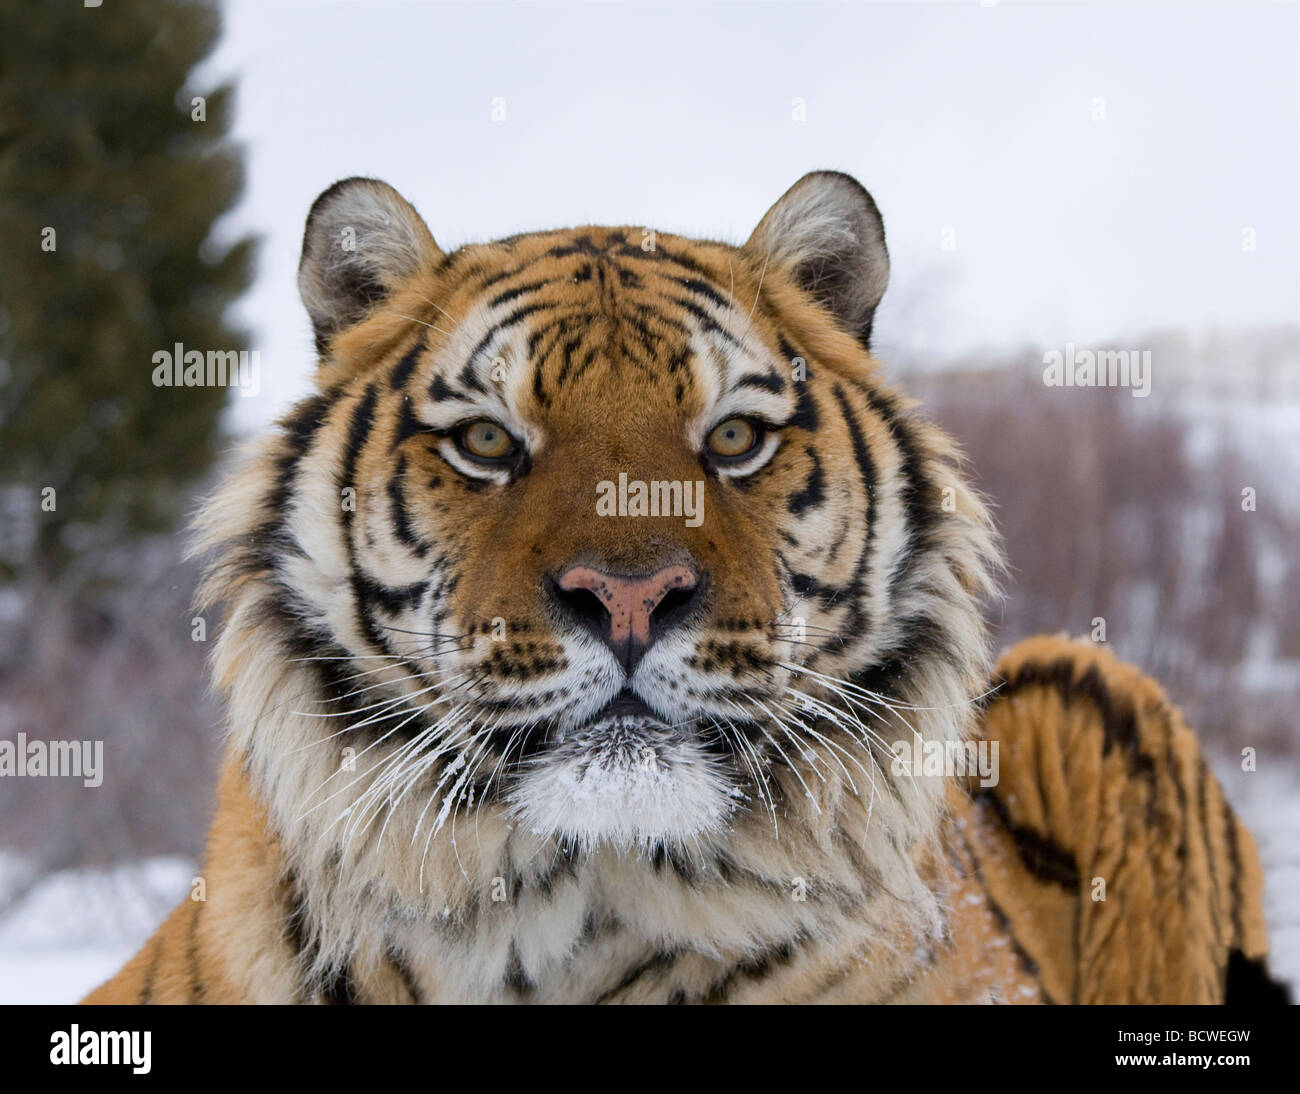 Close-up of a Siberian tiger (Panthera tigris altaica) - Stock Image